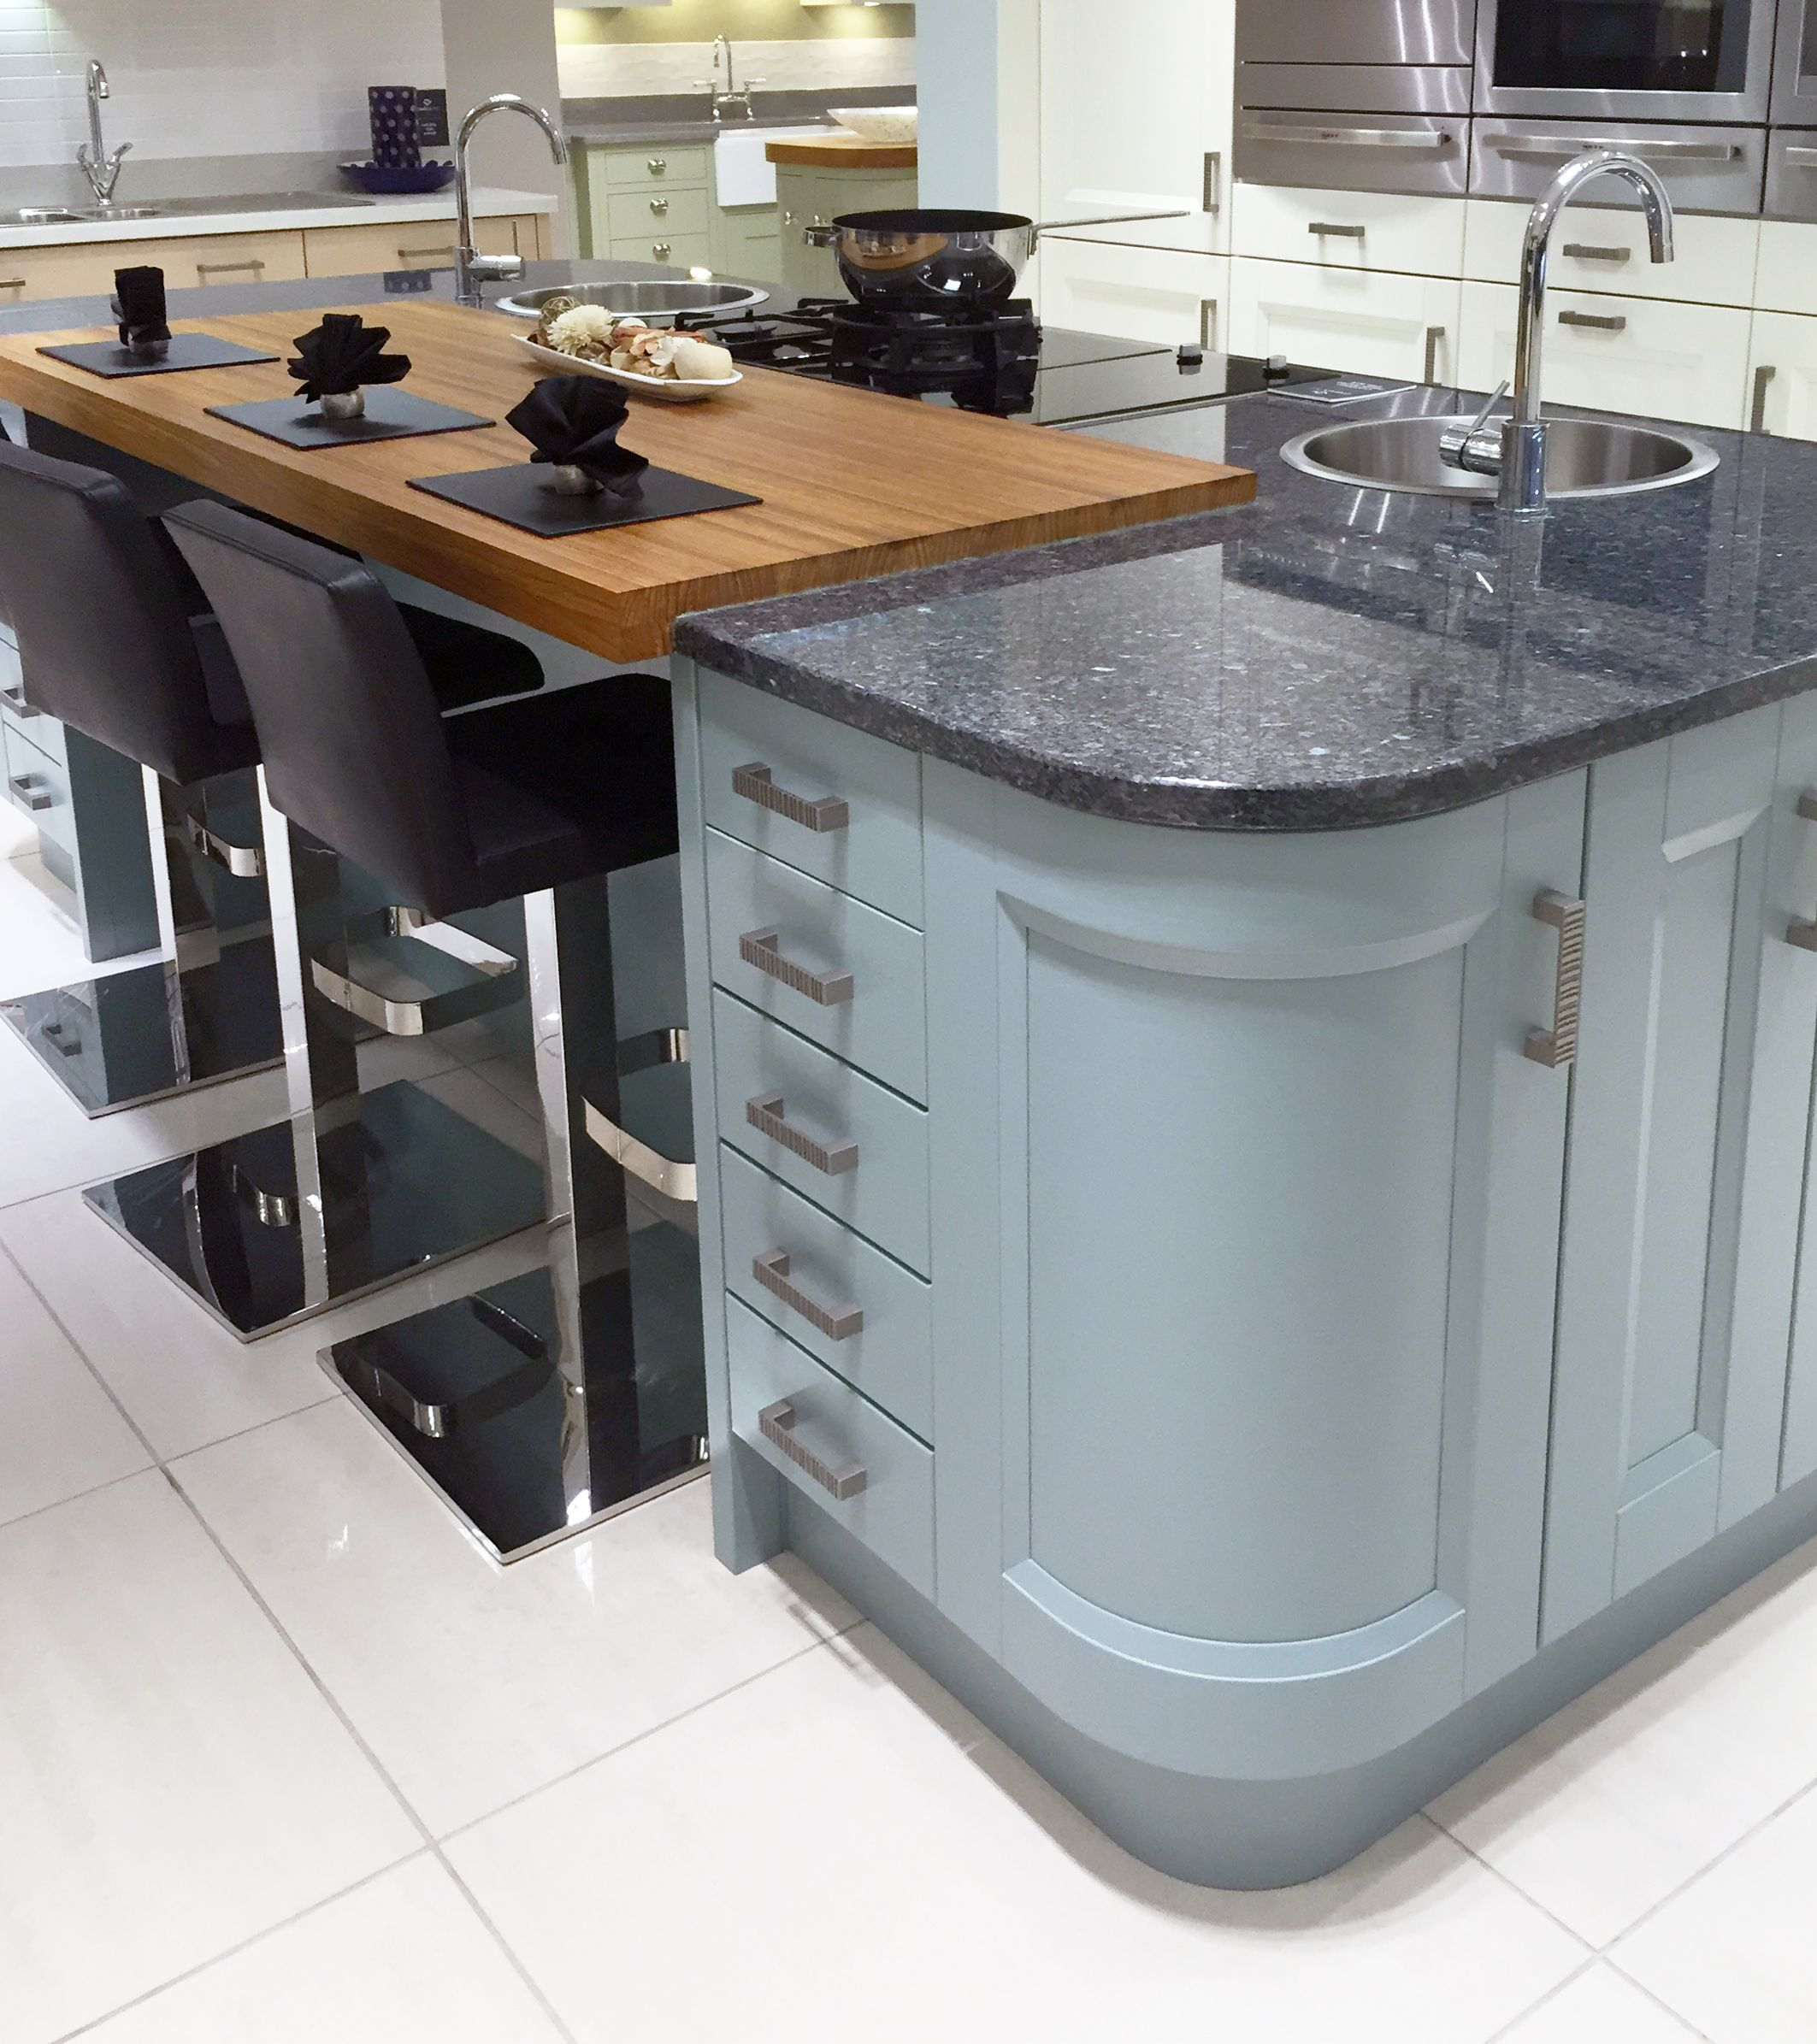 Contemporary Kitchen Island Design In Blue With Curved Units Inset